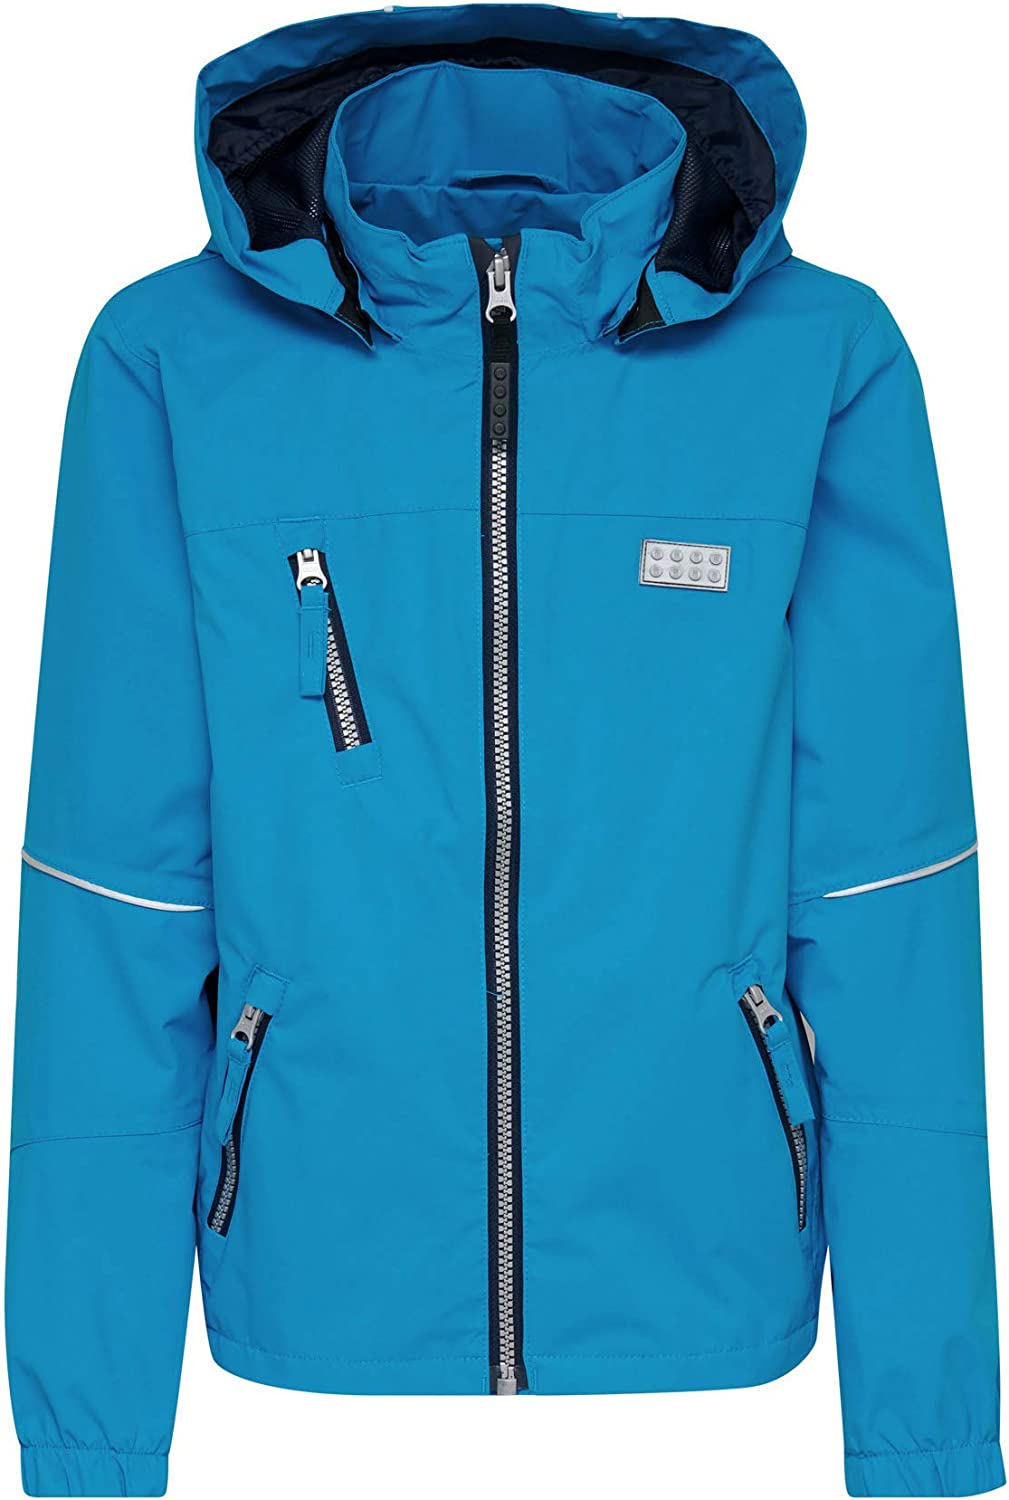 LEGO Wear Waterproof /& Windproof Mesh-Lined Snow//Ski Jacket with Chin Guard Protector